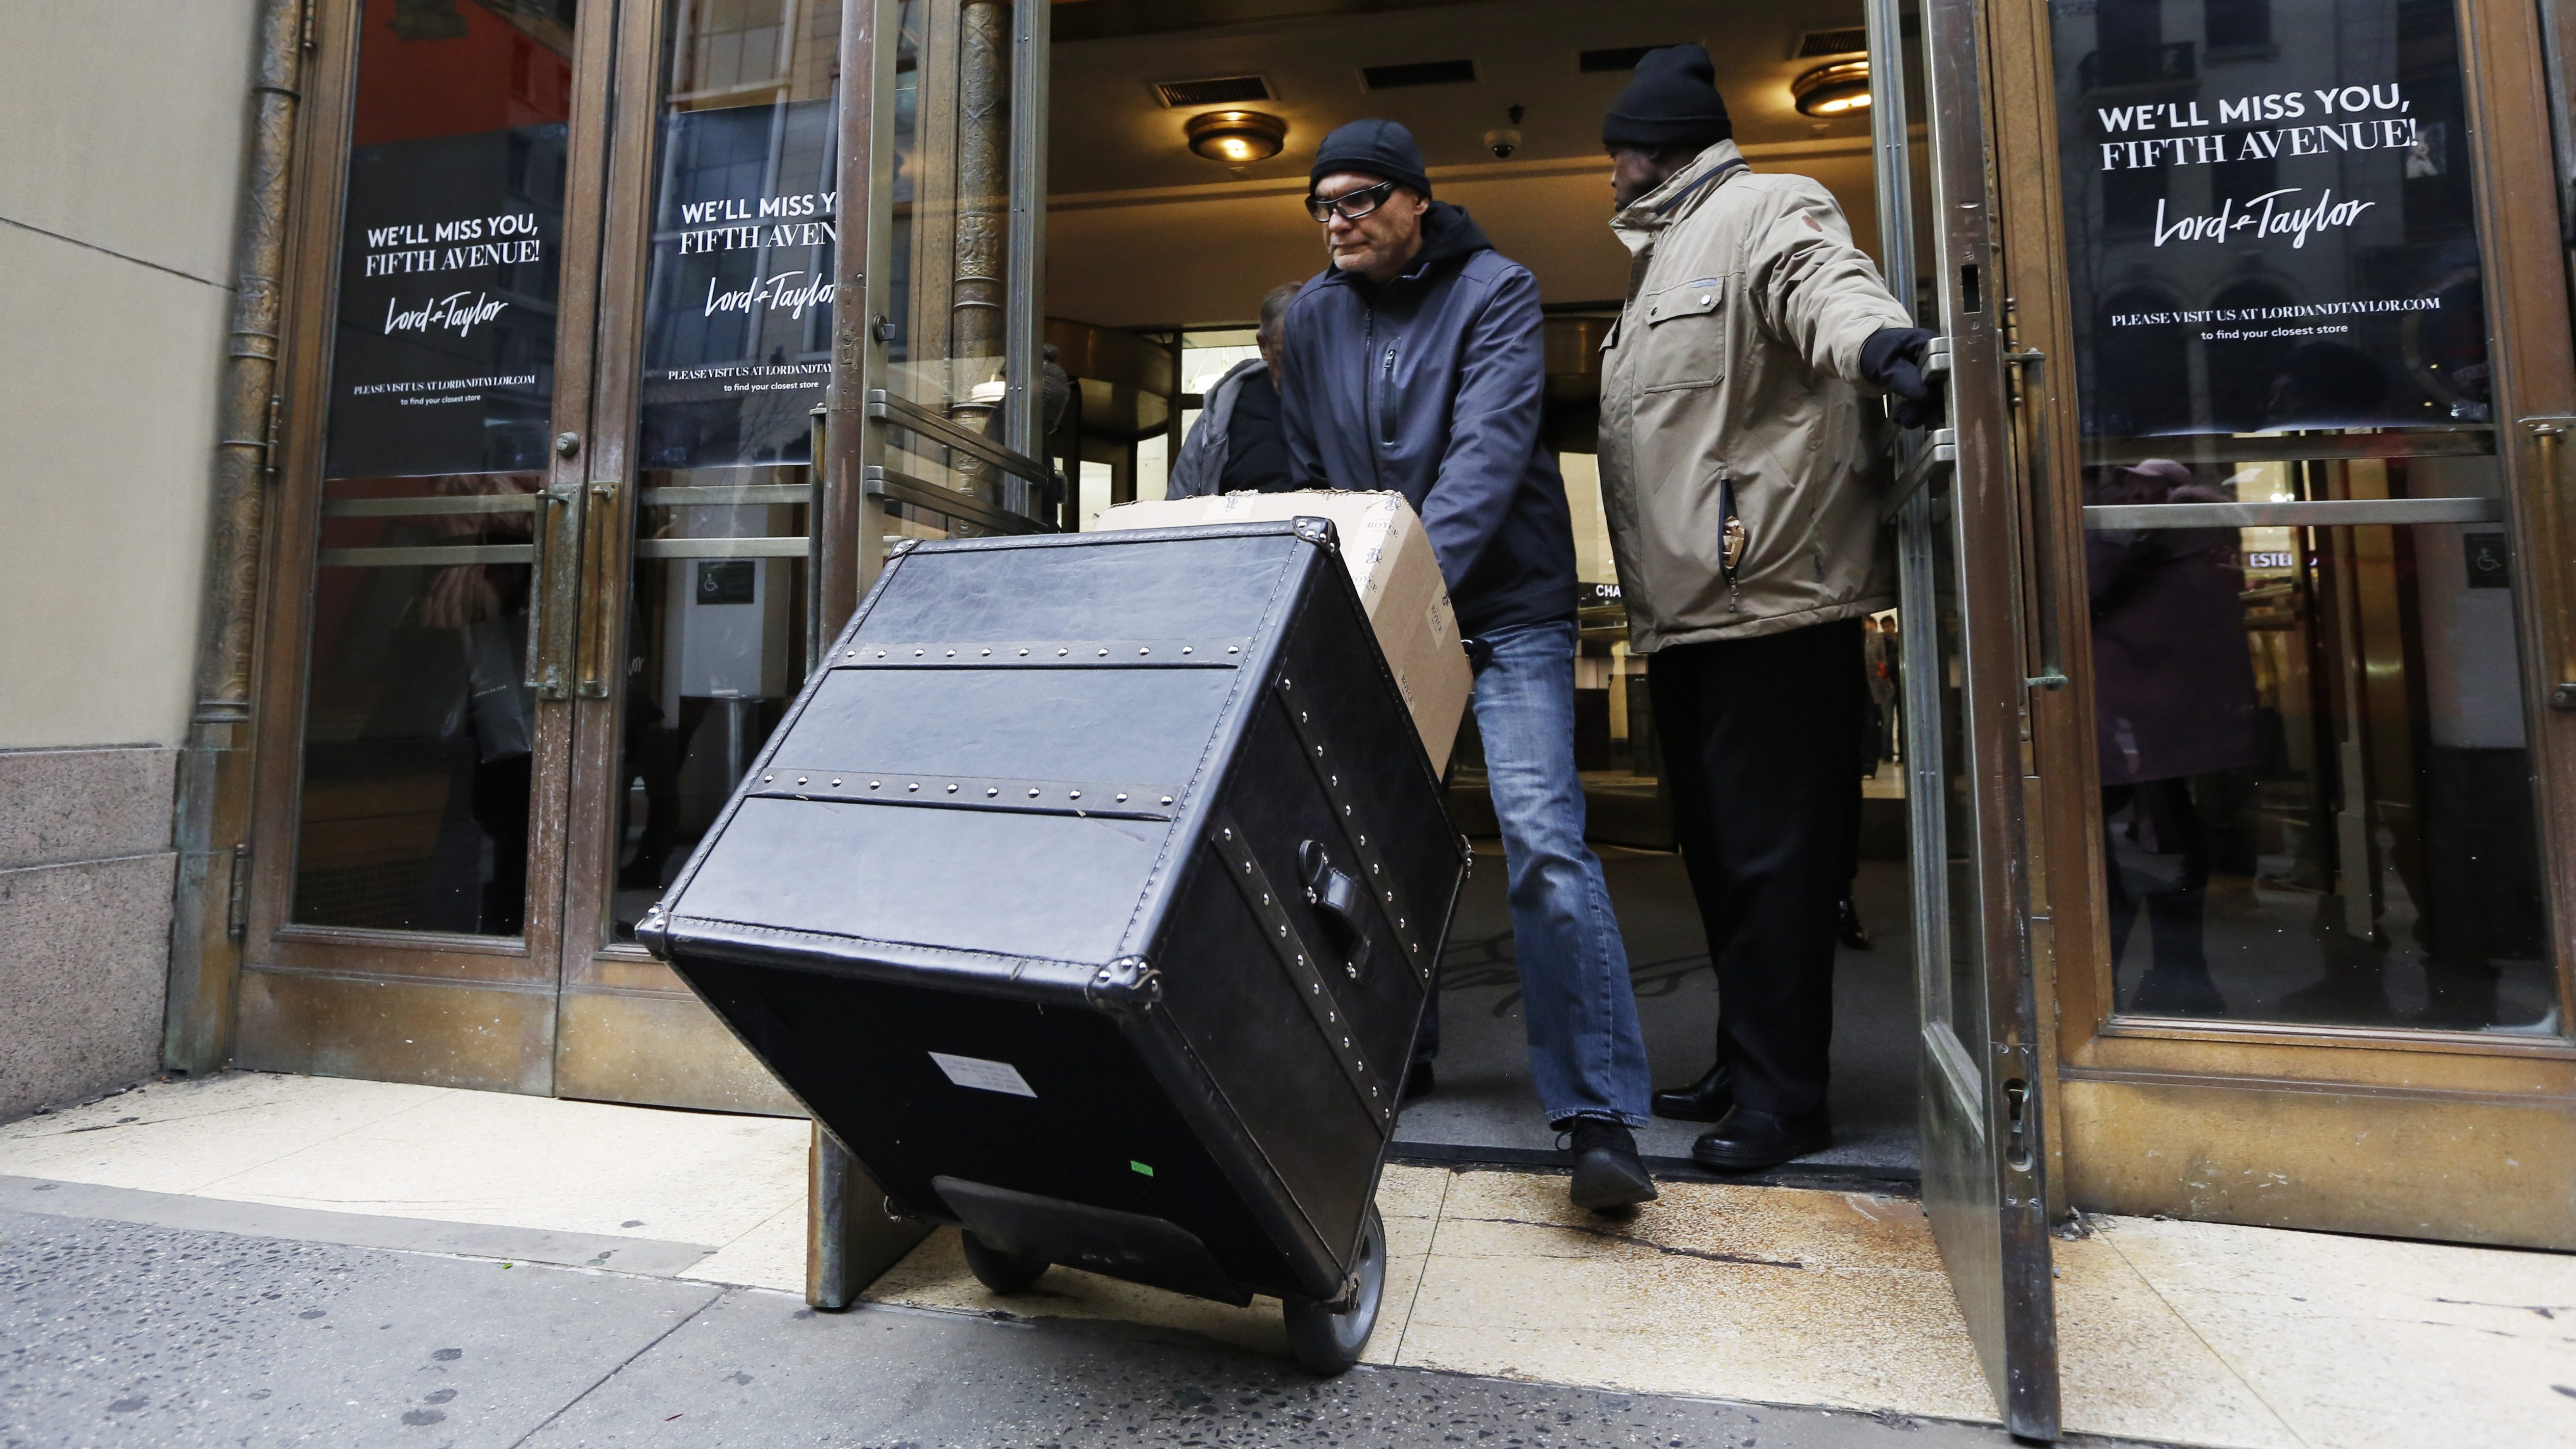 A man wheels a case out of the WeWork-owned Lord and Taylor building.